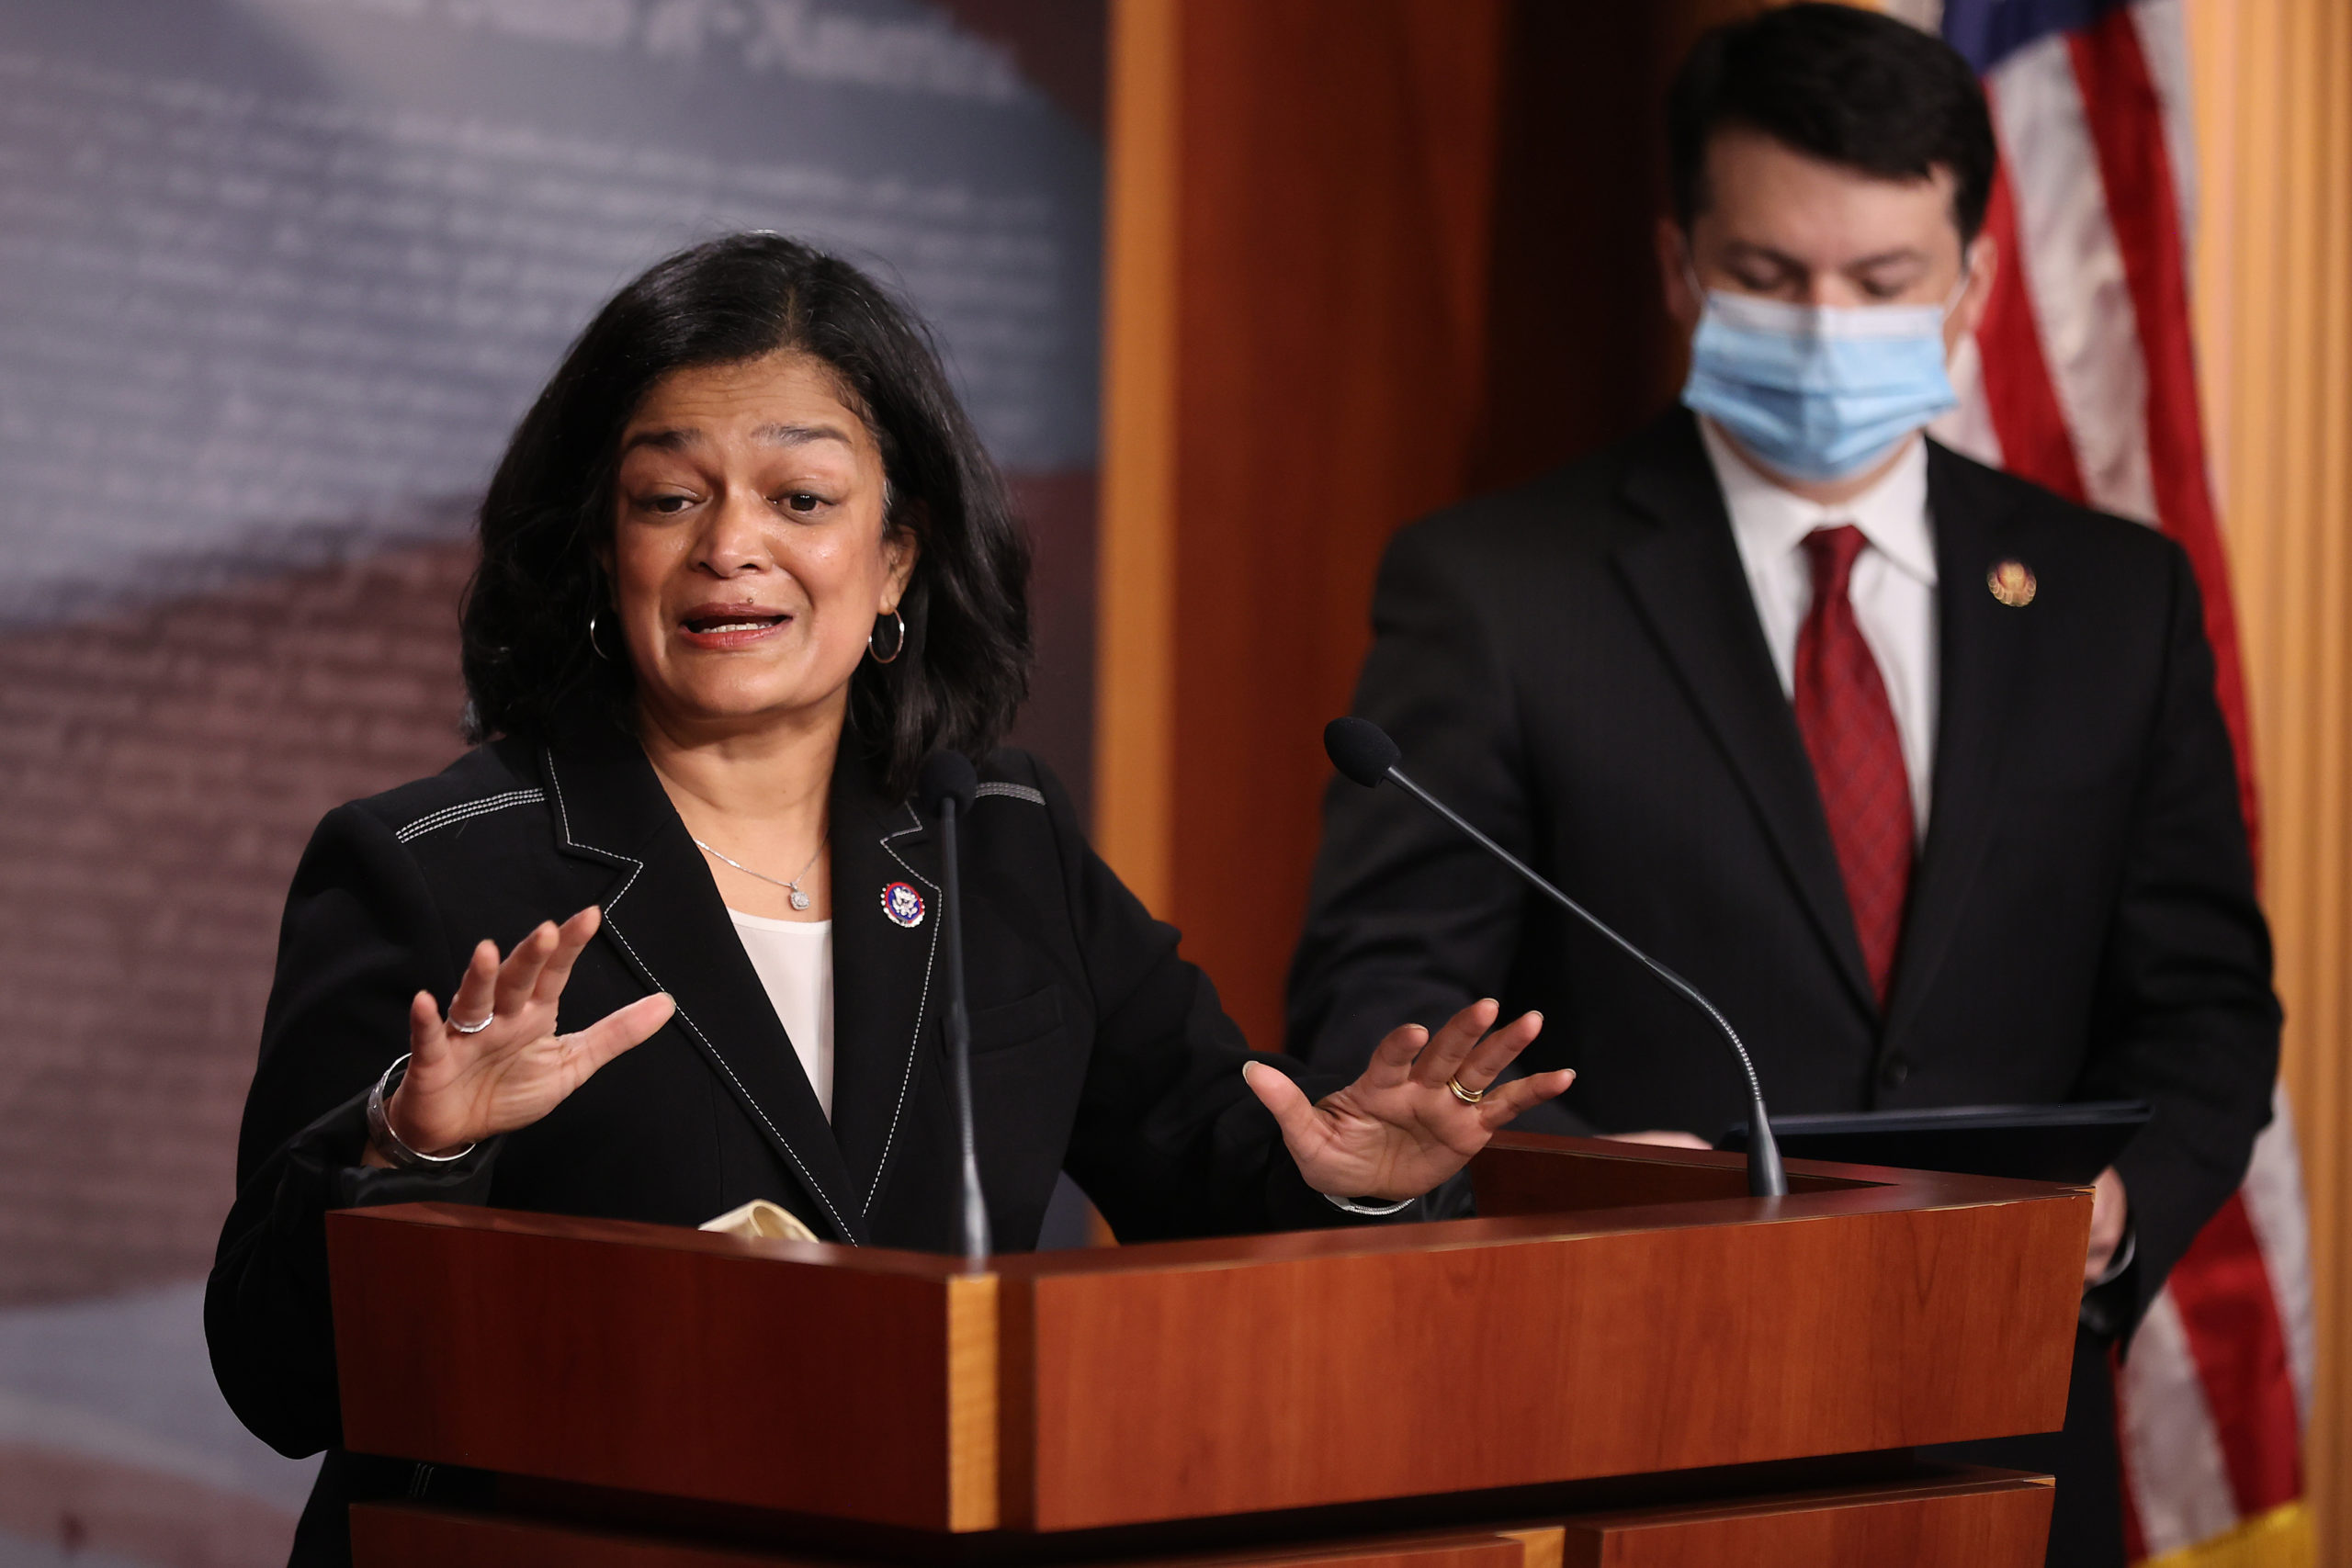 Rep. Pramila Jayapal holds a news conference on March 1. (Chip Somodevilla/Getty Images)